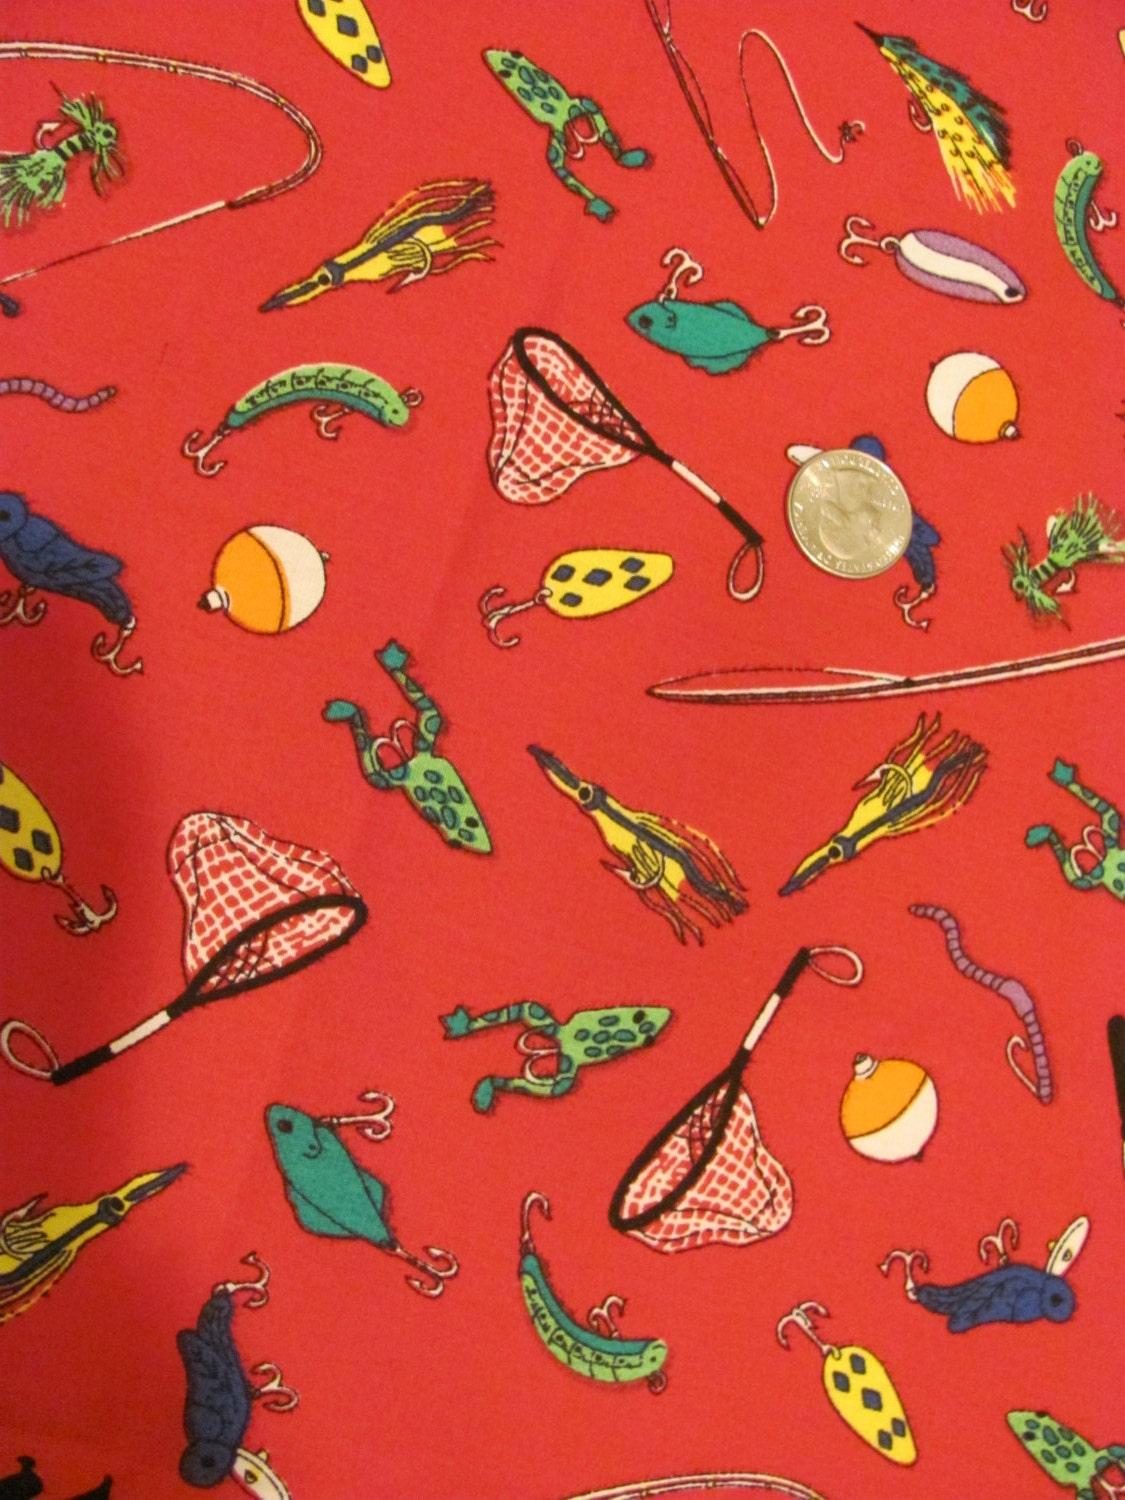 Fishing theme fabric yardage heavier cotton by thisplusthat for Fishing themed fabric